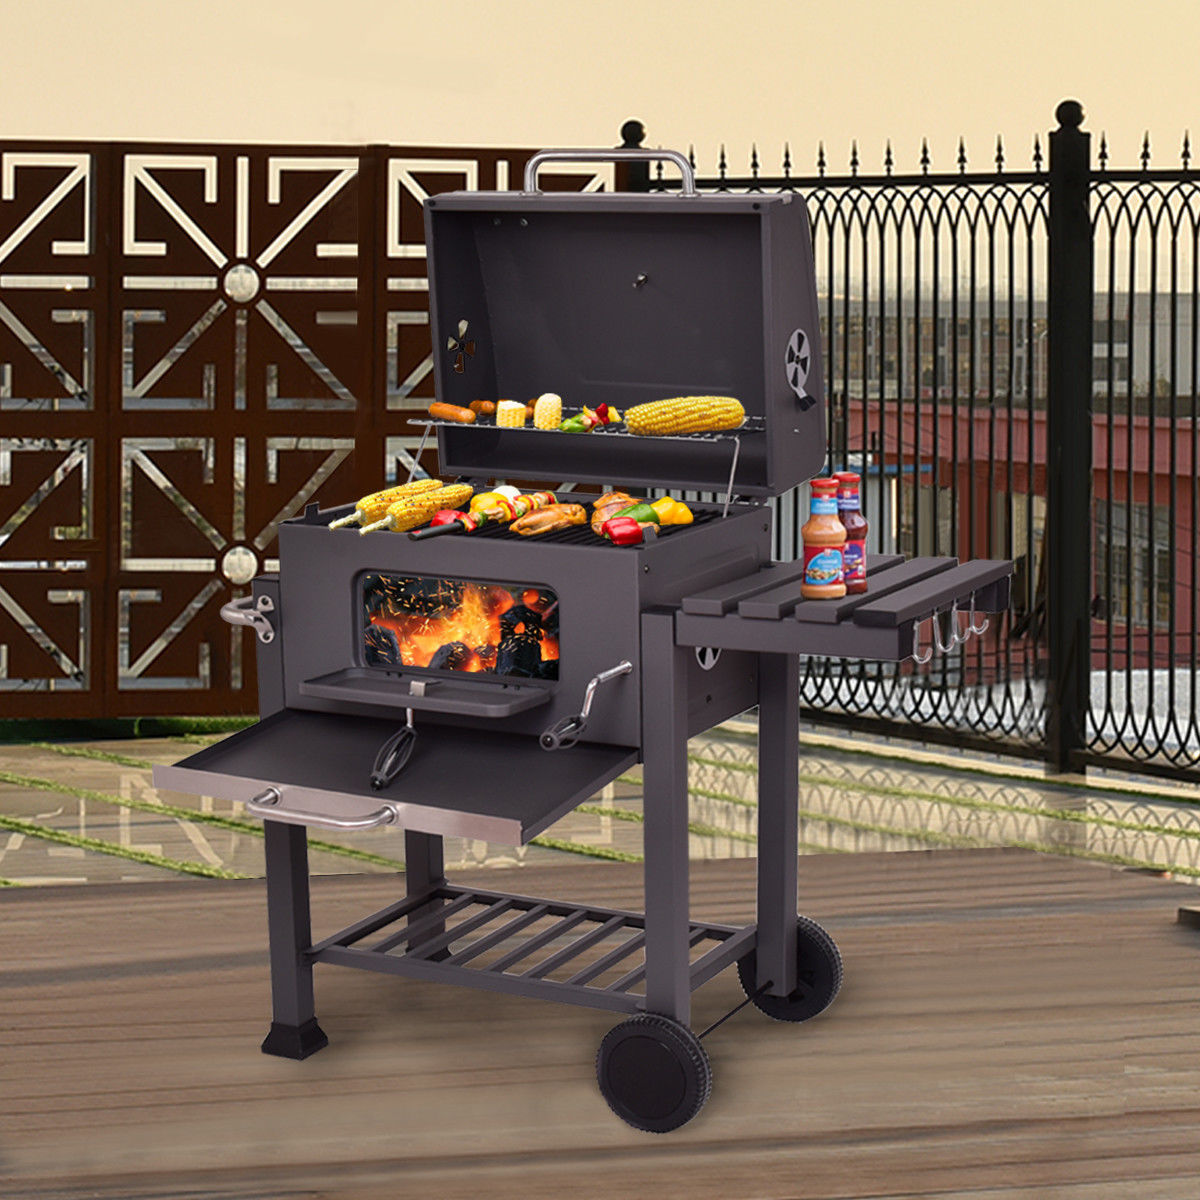 Incroyable Costway Charcoal Grill Barbecue BBQ Grill Outdoor Patio Backyard Cooking  Wheels Portable